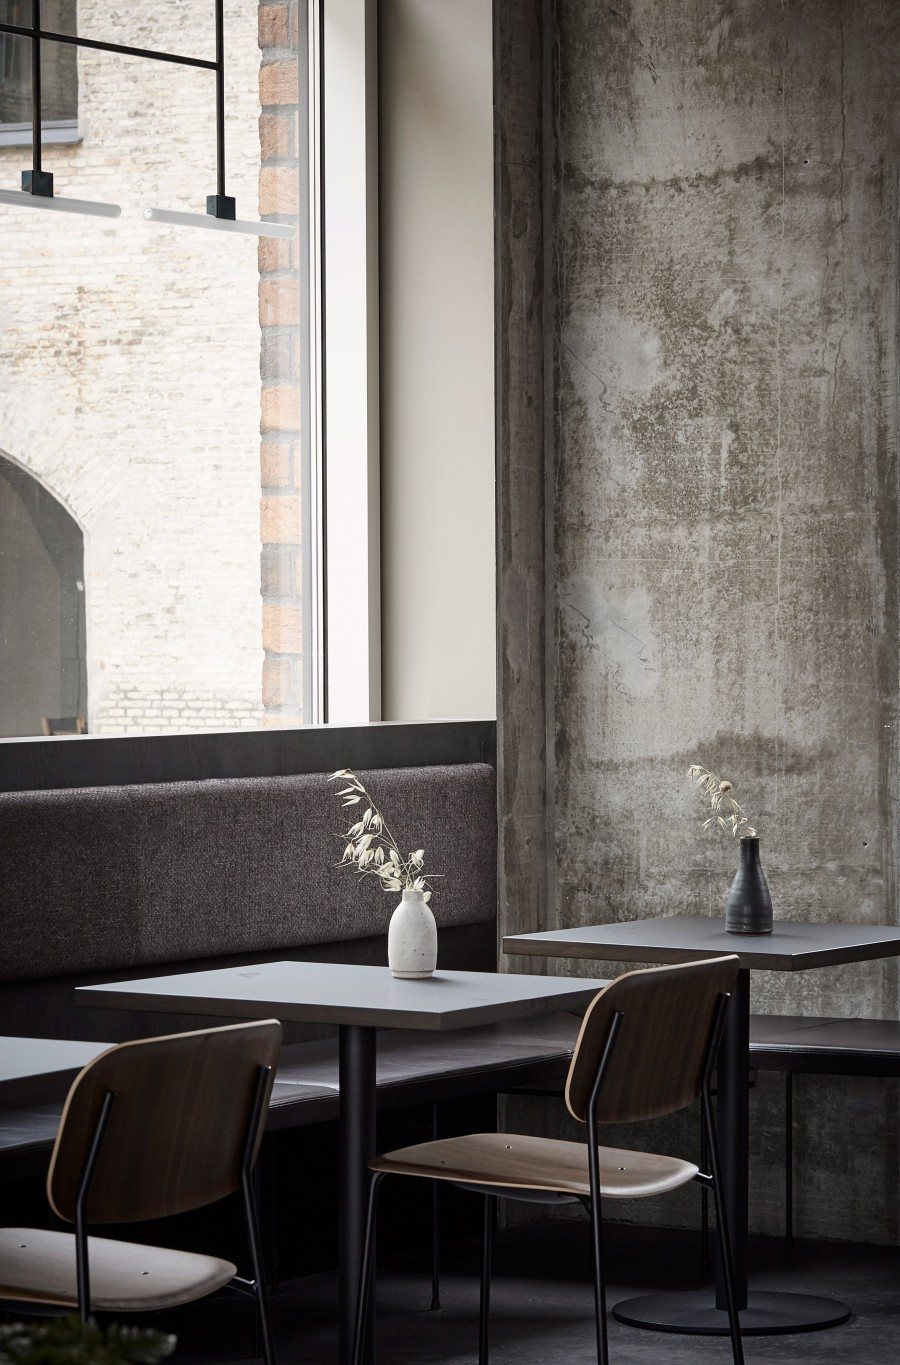 norm-architects-restaurant-aprilandmay3